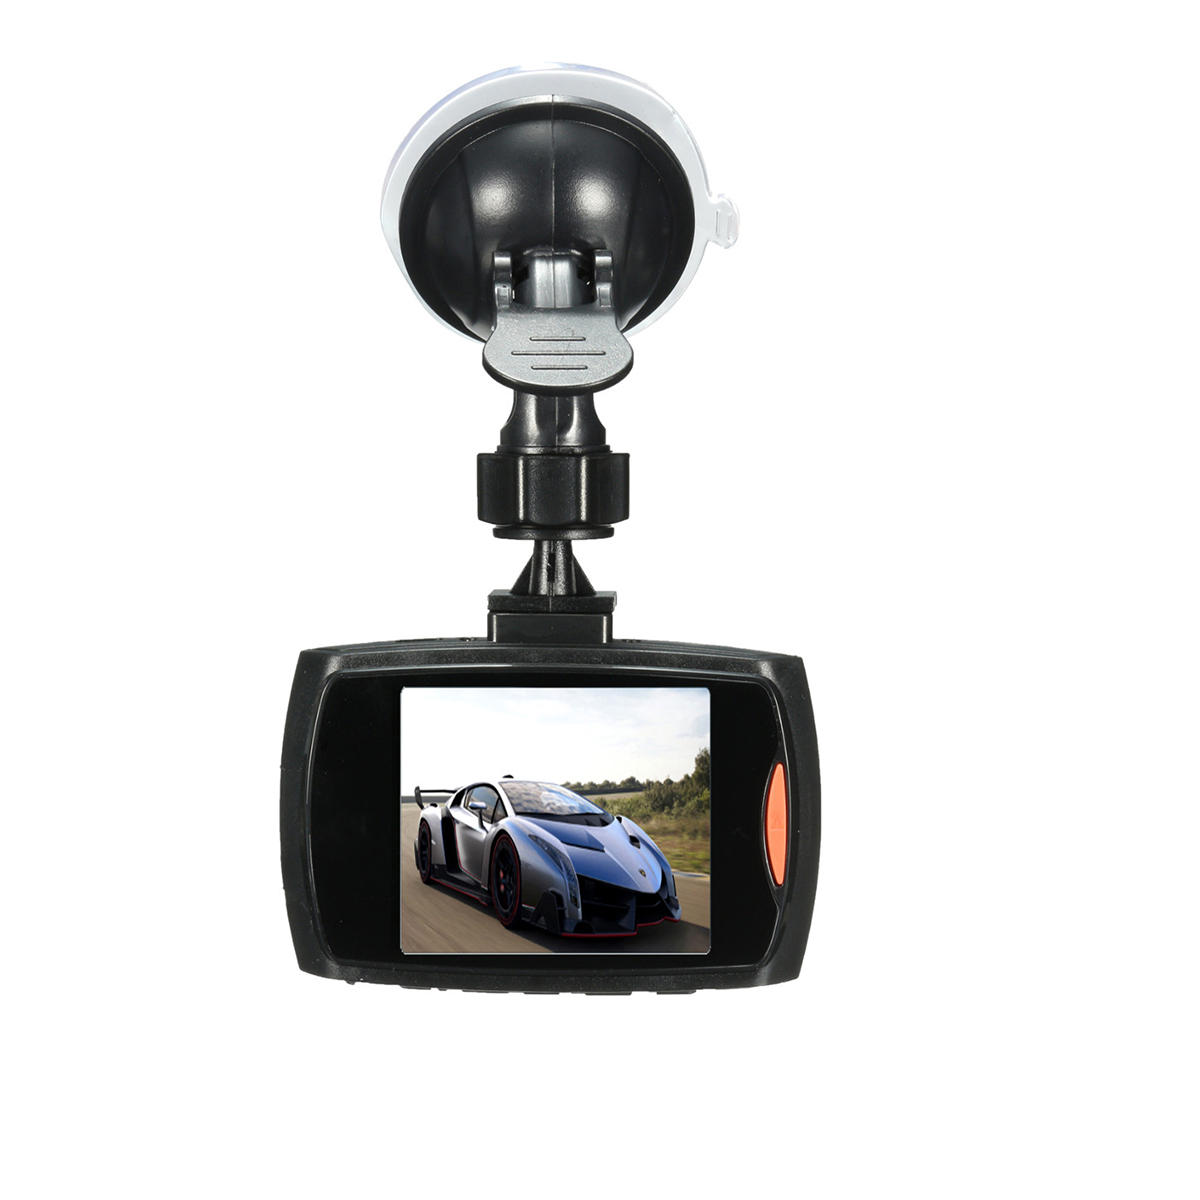 HD Car DVR Camera Night Vision Video Tachograph G-sensor Cam Recorder Tachograph